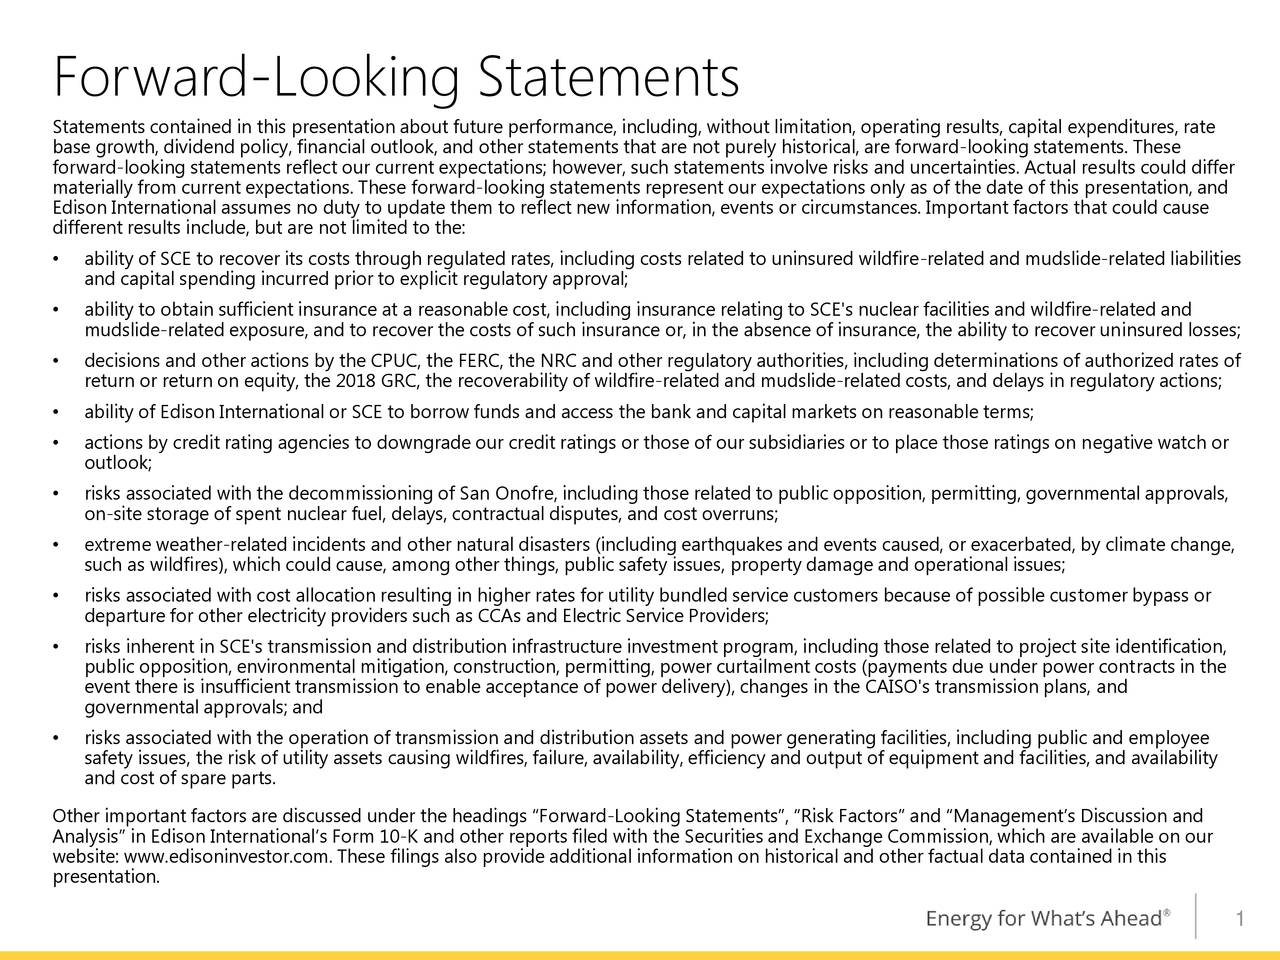 Statements contained in this presentation about future performance, including, without limitation, operating results, capital expenditures, rate base growth, dividend policy, financial outlook, and other statements that are not purely historical, are forward-looking statements. These forward-looking statements reflect our current expectations; however, such statements involve risks and uncertainties. Actual results could differ materially from current expectations. These forward-looking statements represent our expectations only as of the date of this presentation, and Edison International assumes no duty to update them to reflect new information, events or circumstances. Important factors that could cause different results include, but are not limited to the: • ability of SCE to recover its costs through regulated rates, including costs related to uninsured wildfire-related and mudslide-related liabilities and capital spending incurred prior to explicit regulatory approval; • ability to obtain sufficient insurance at a reasonable cost, including insurance relating to SCE's nuclear facilities and wildfire-related and mudslide-related exposure, and to recover the costs of such insurance or, in the absence of insurance, the ability to recover uninsured losses; • decisions and other actions by the CPUC, the FERC, the NRC and other regulatory authorities, including determinations of authorized rates of return or return on equity, the 2018 GRC, the recoverability of wildfire-related and mudslide-related costs, and delays in regulatory actions; • ability of Edison International or SCE to borrow funds and access the bank and capital markets on reasonable terms; • actions by credit rating agencies to downgrade our credit ratings or those of our subsidiaries or to place those ratings on negative watch or outlook; • risks associated with the decommissioning of San Onofre, including those related to public opposition, permitting, governmental approvals, on-site storage of spen